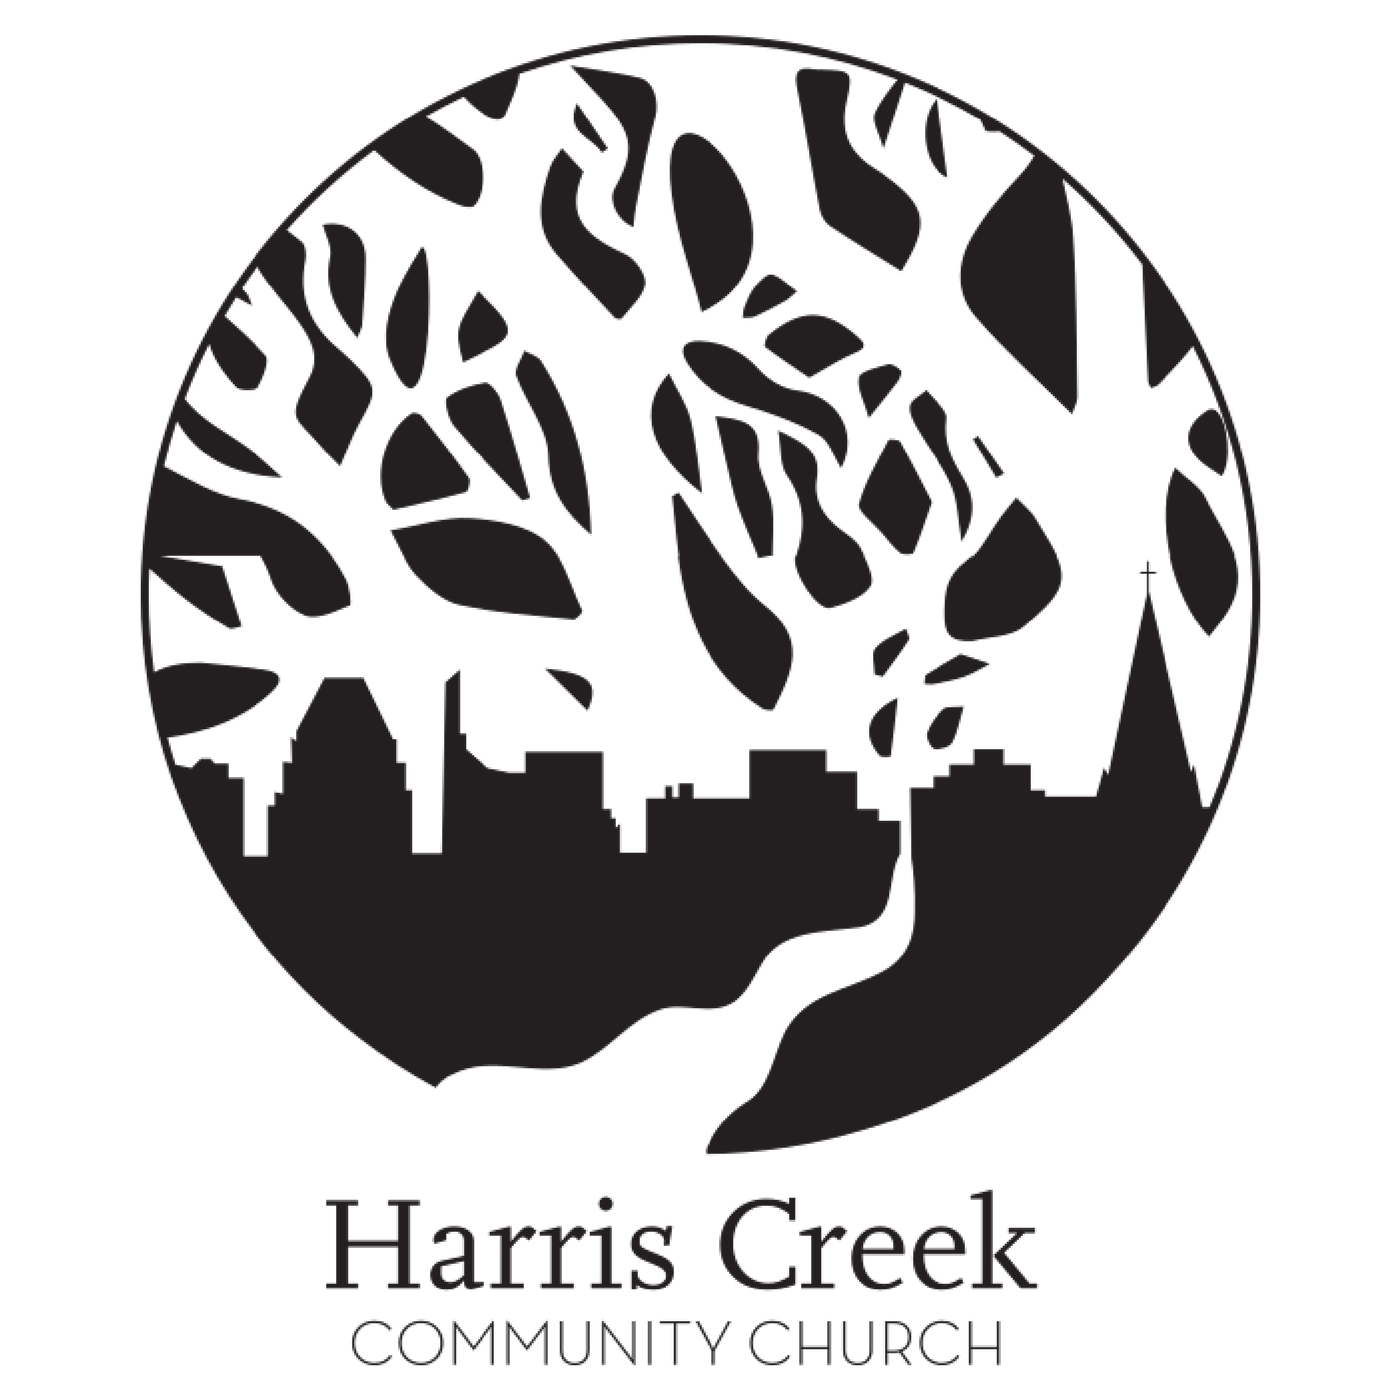 Harris Creek Community Church